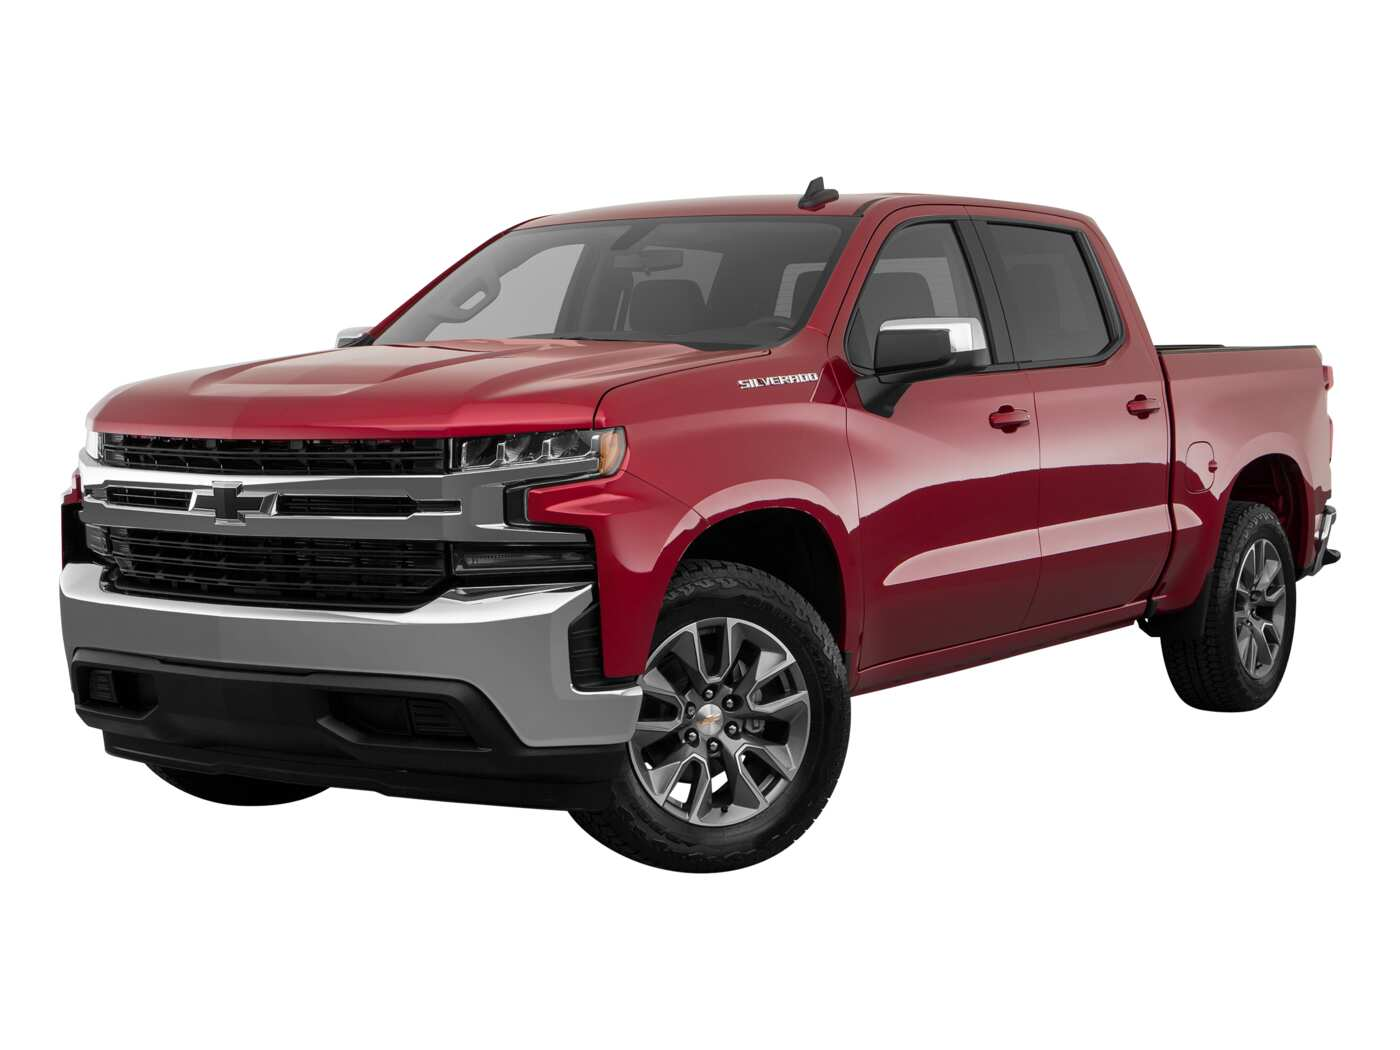 2020 Chevrolet Silverado 1500 High Country Crew Cab Short Box 4WD